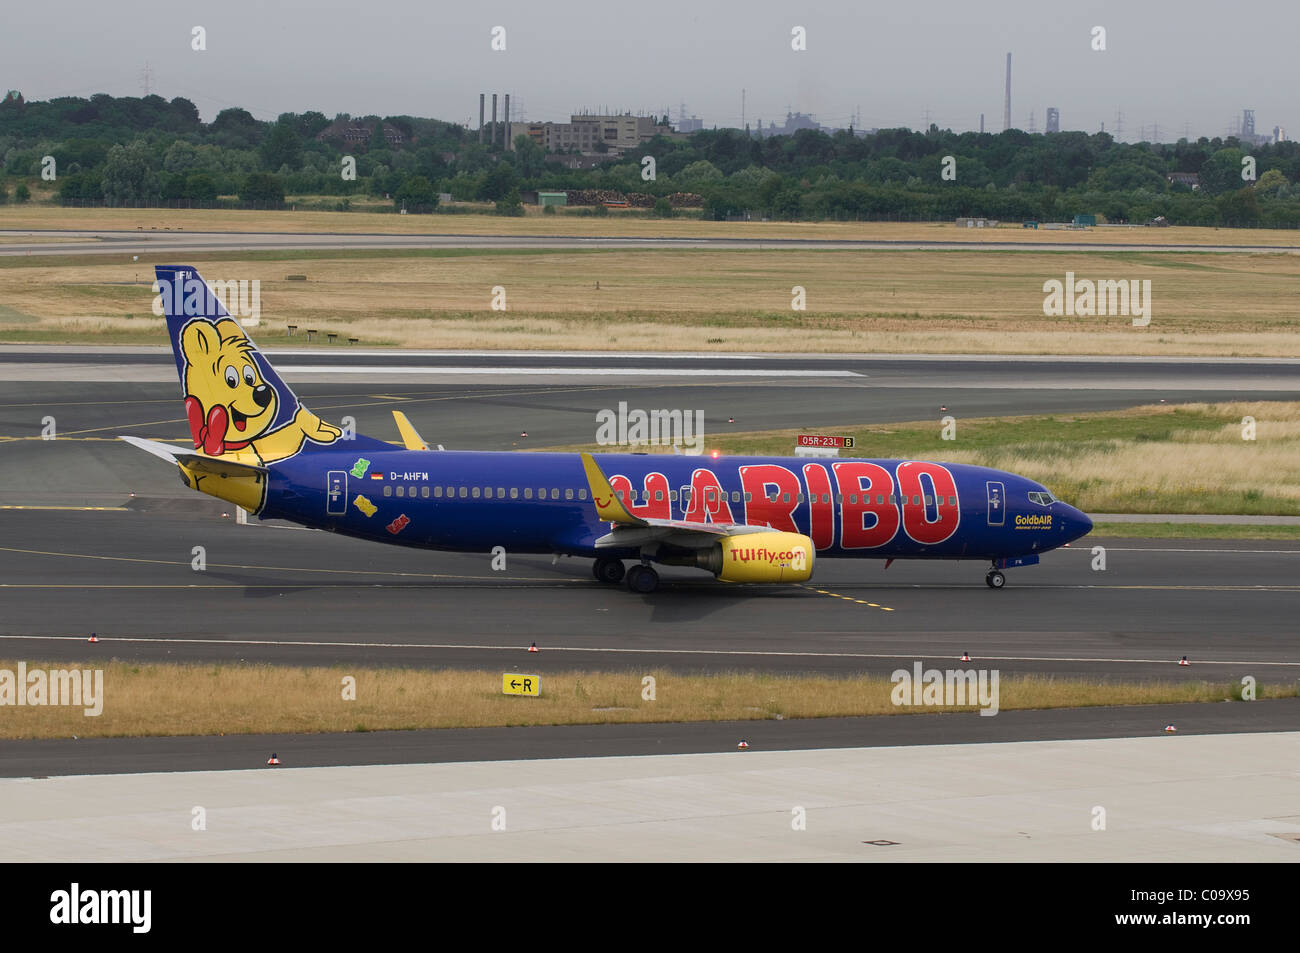 Haribo Logojet TUIfly Boeing 737-800, GoldbAIR on the runway of the Duesseldorf Airport, North Rhine-Westphalia, - Stock Image